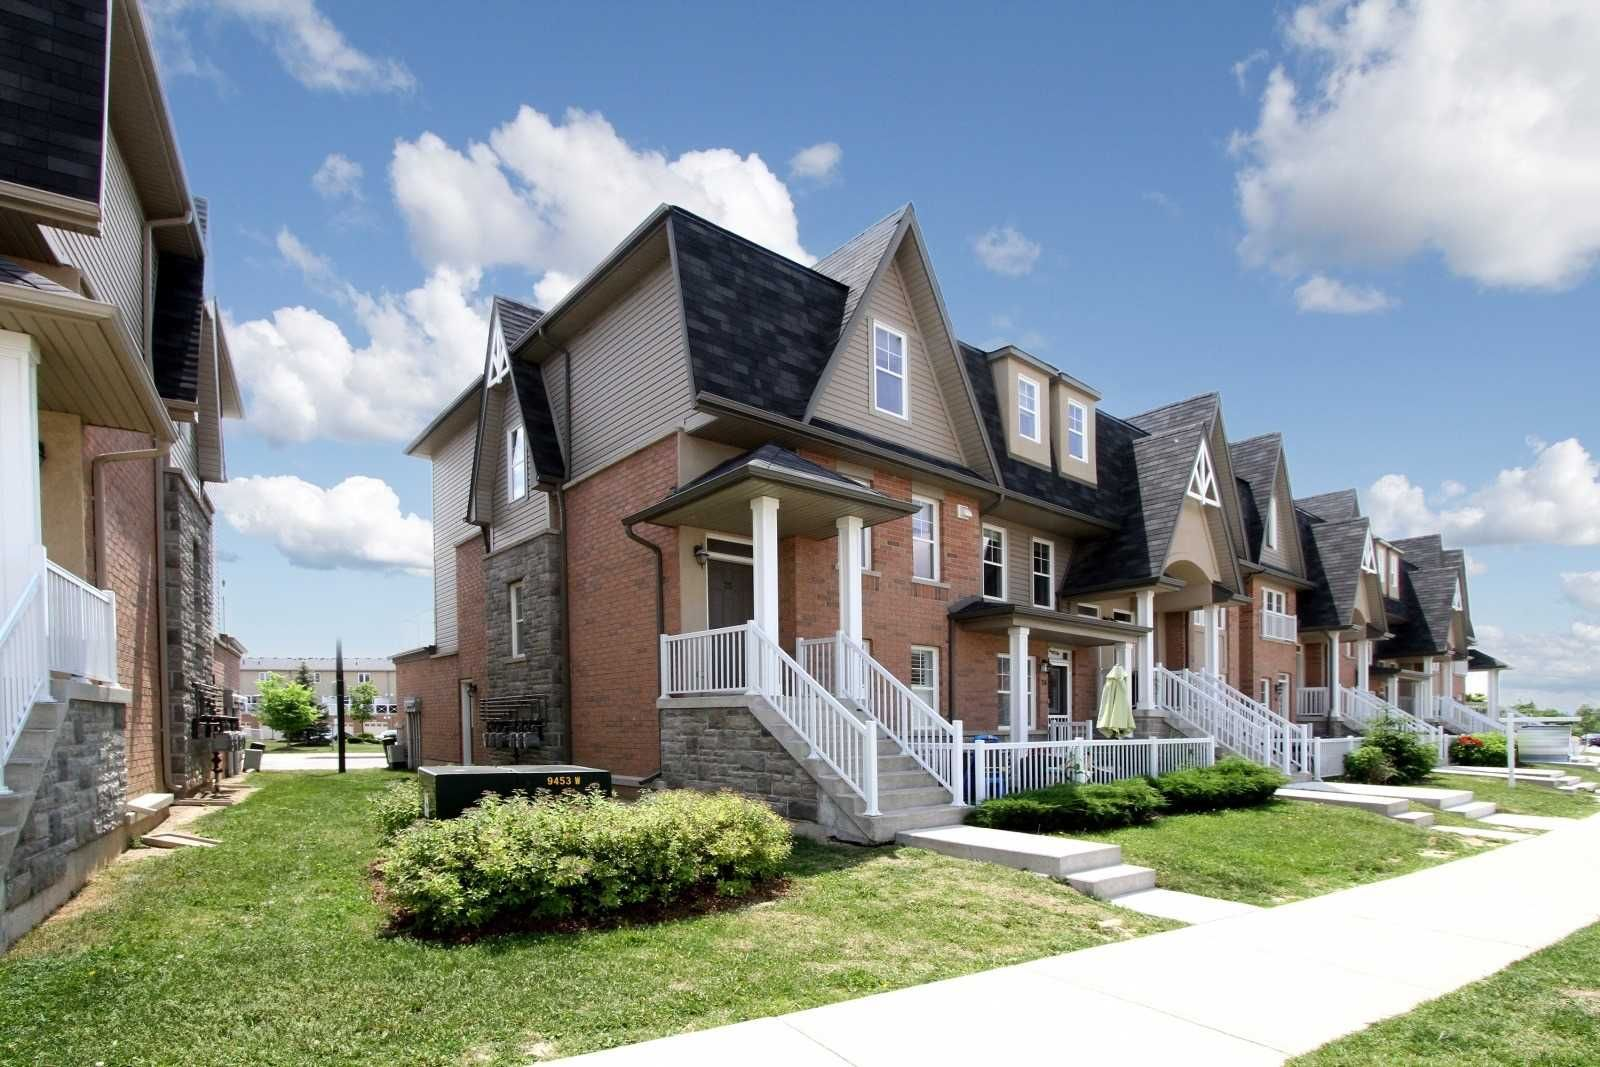 1380 Costigan Rd, unit 25 for sale in Toronto - image #2